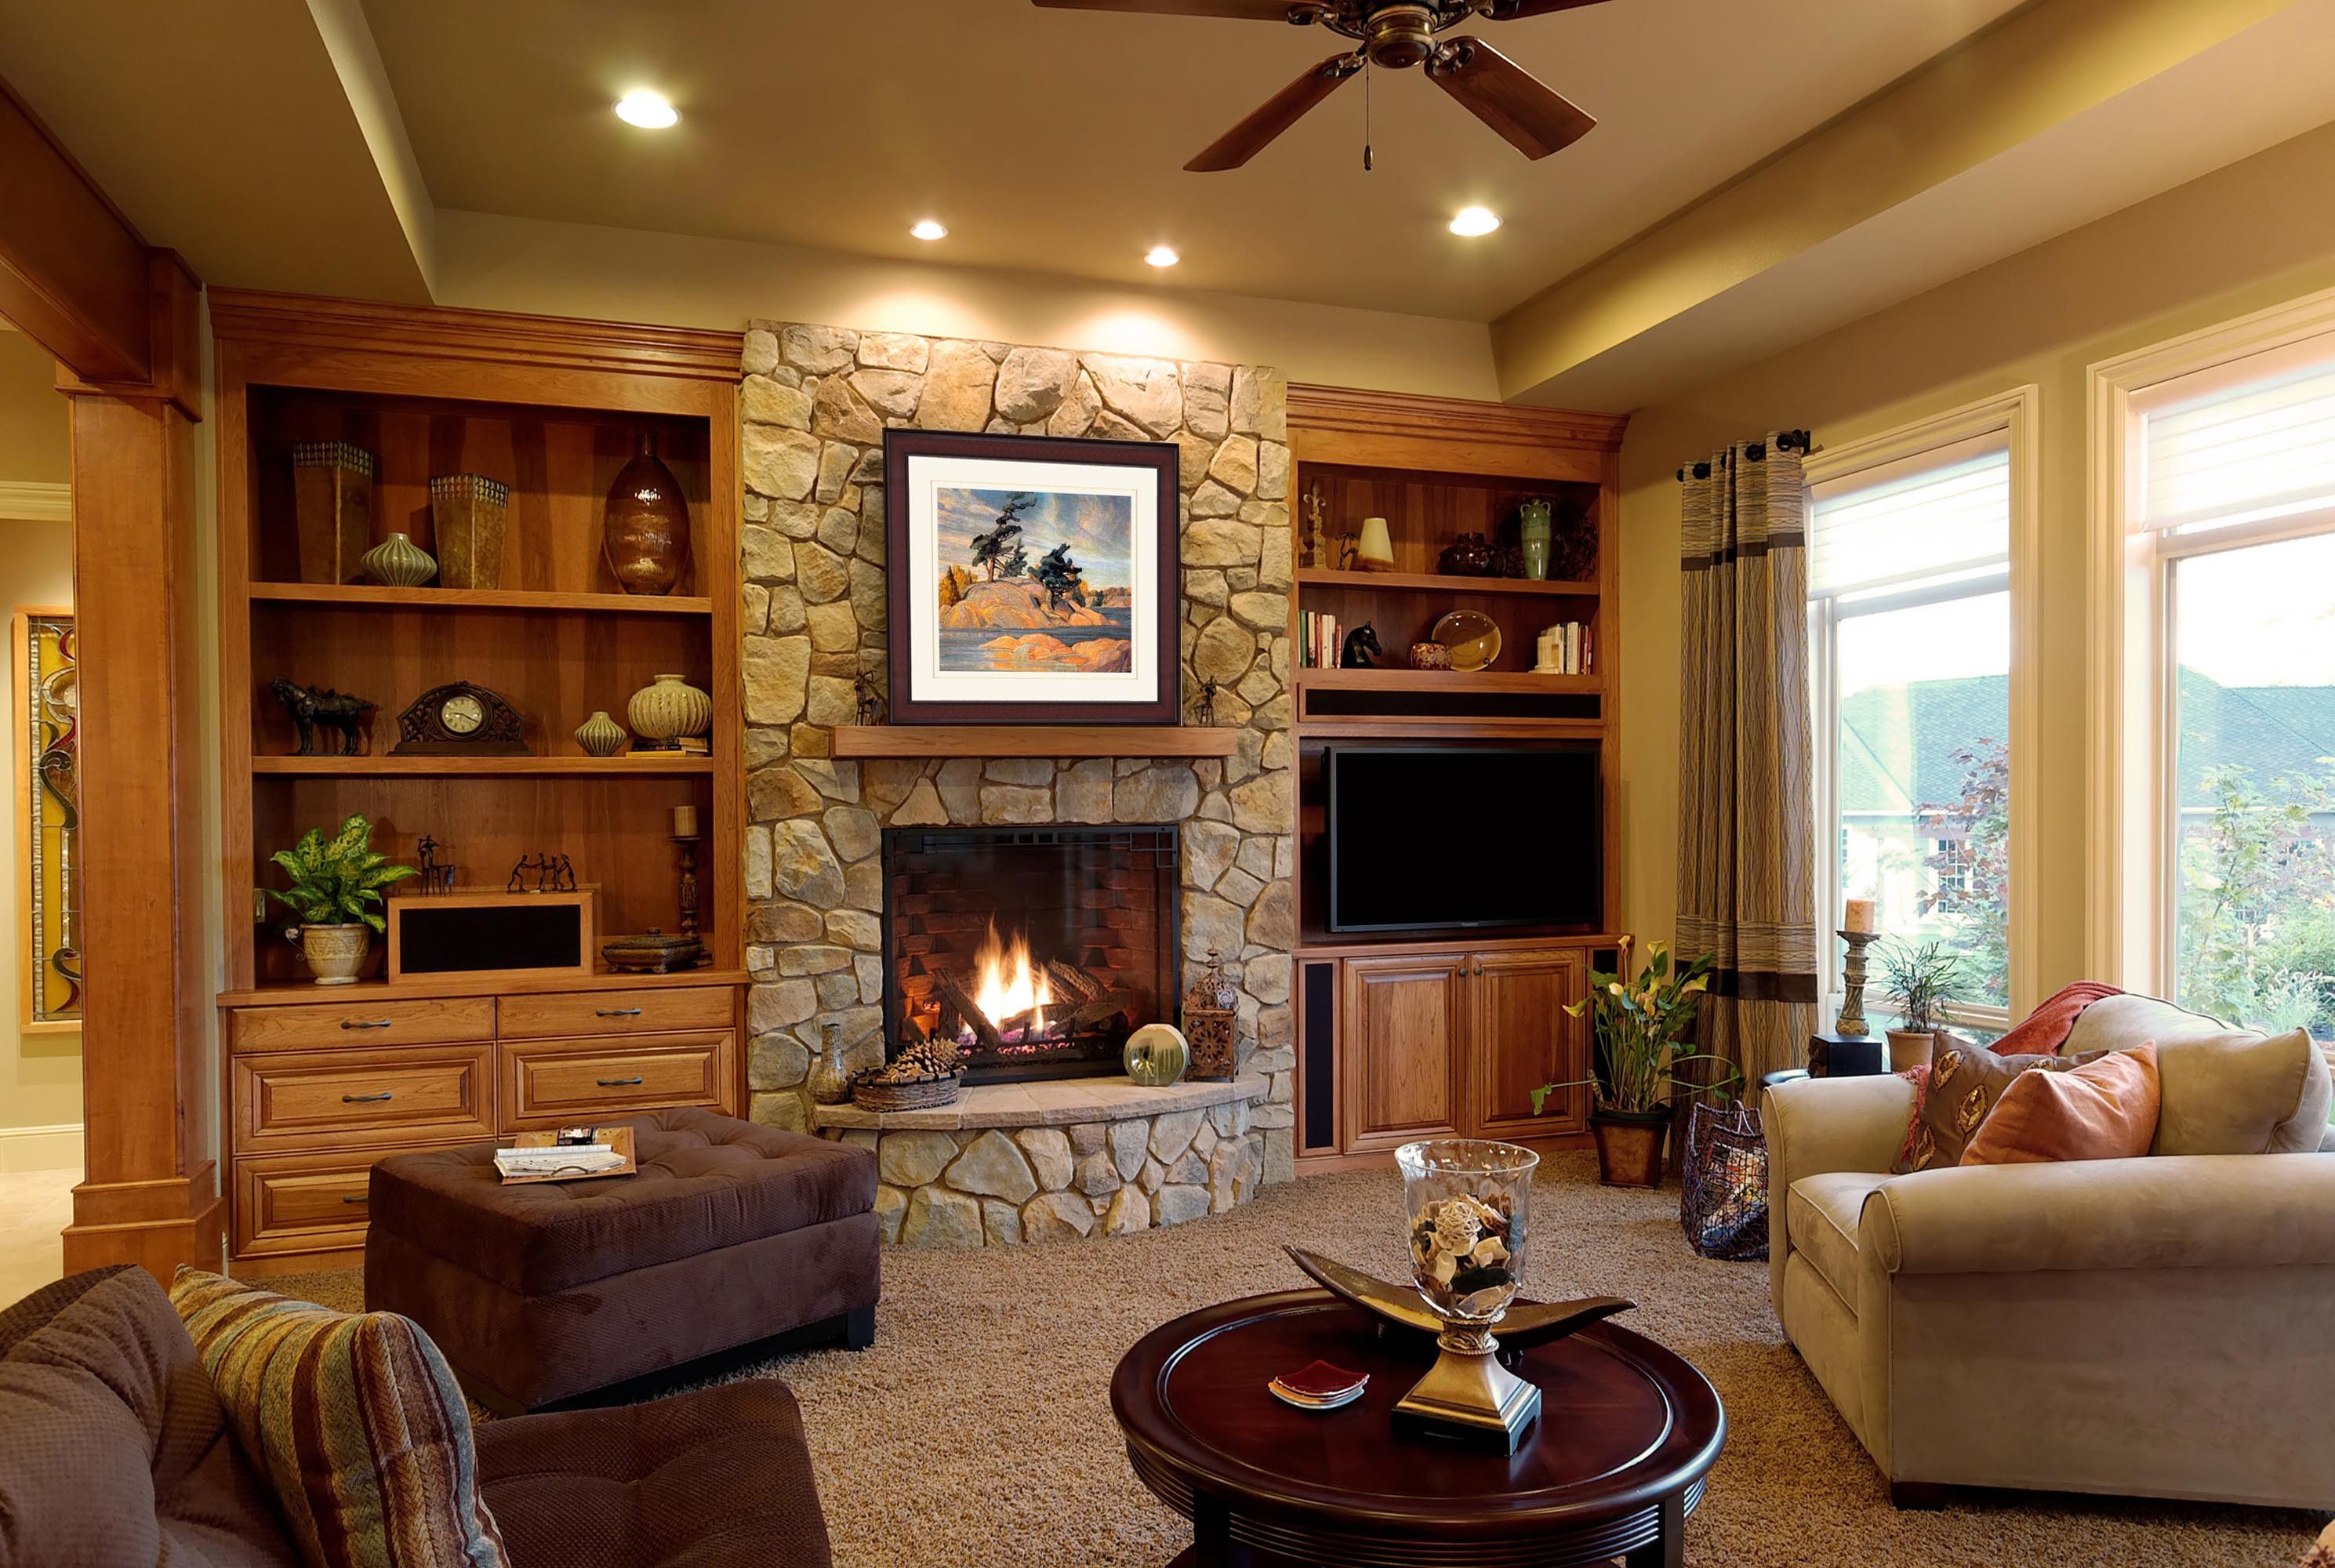 The top 20 Ideas About Cozy Living Room - Best Collections ...